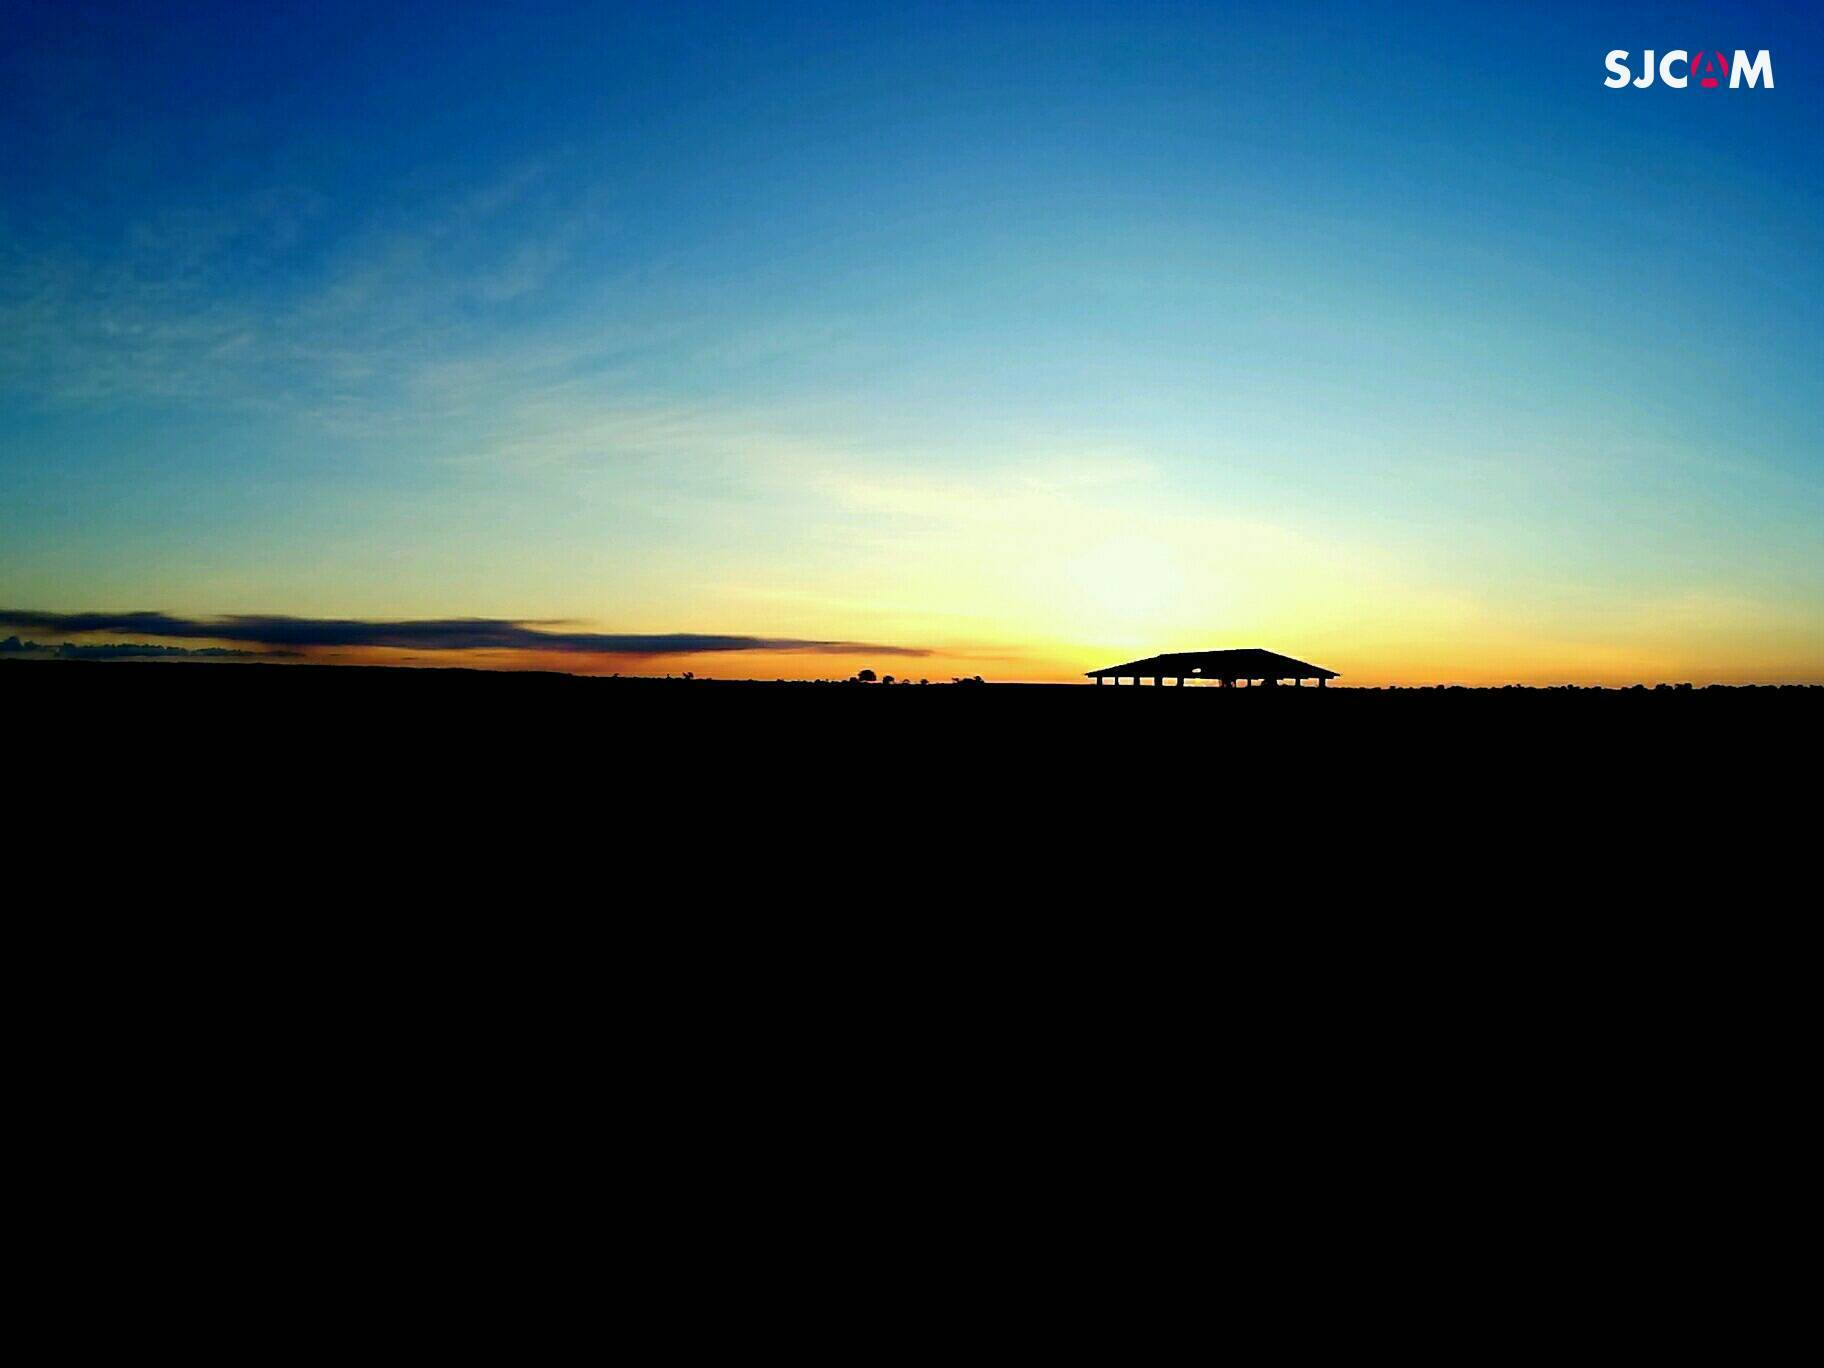 Sunrise and sunset. Capture the Magic Hour with your SJCAM!